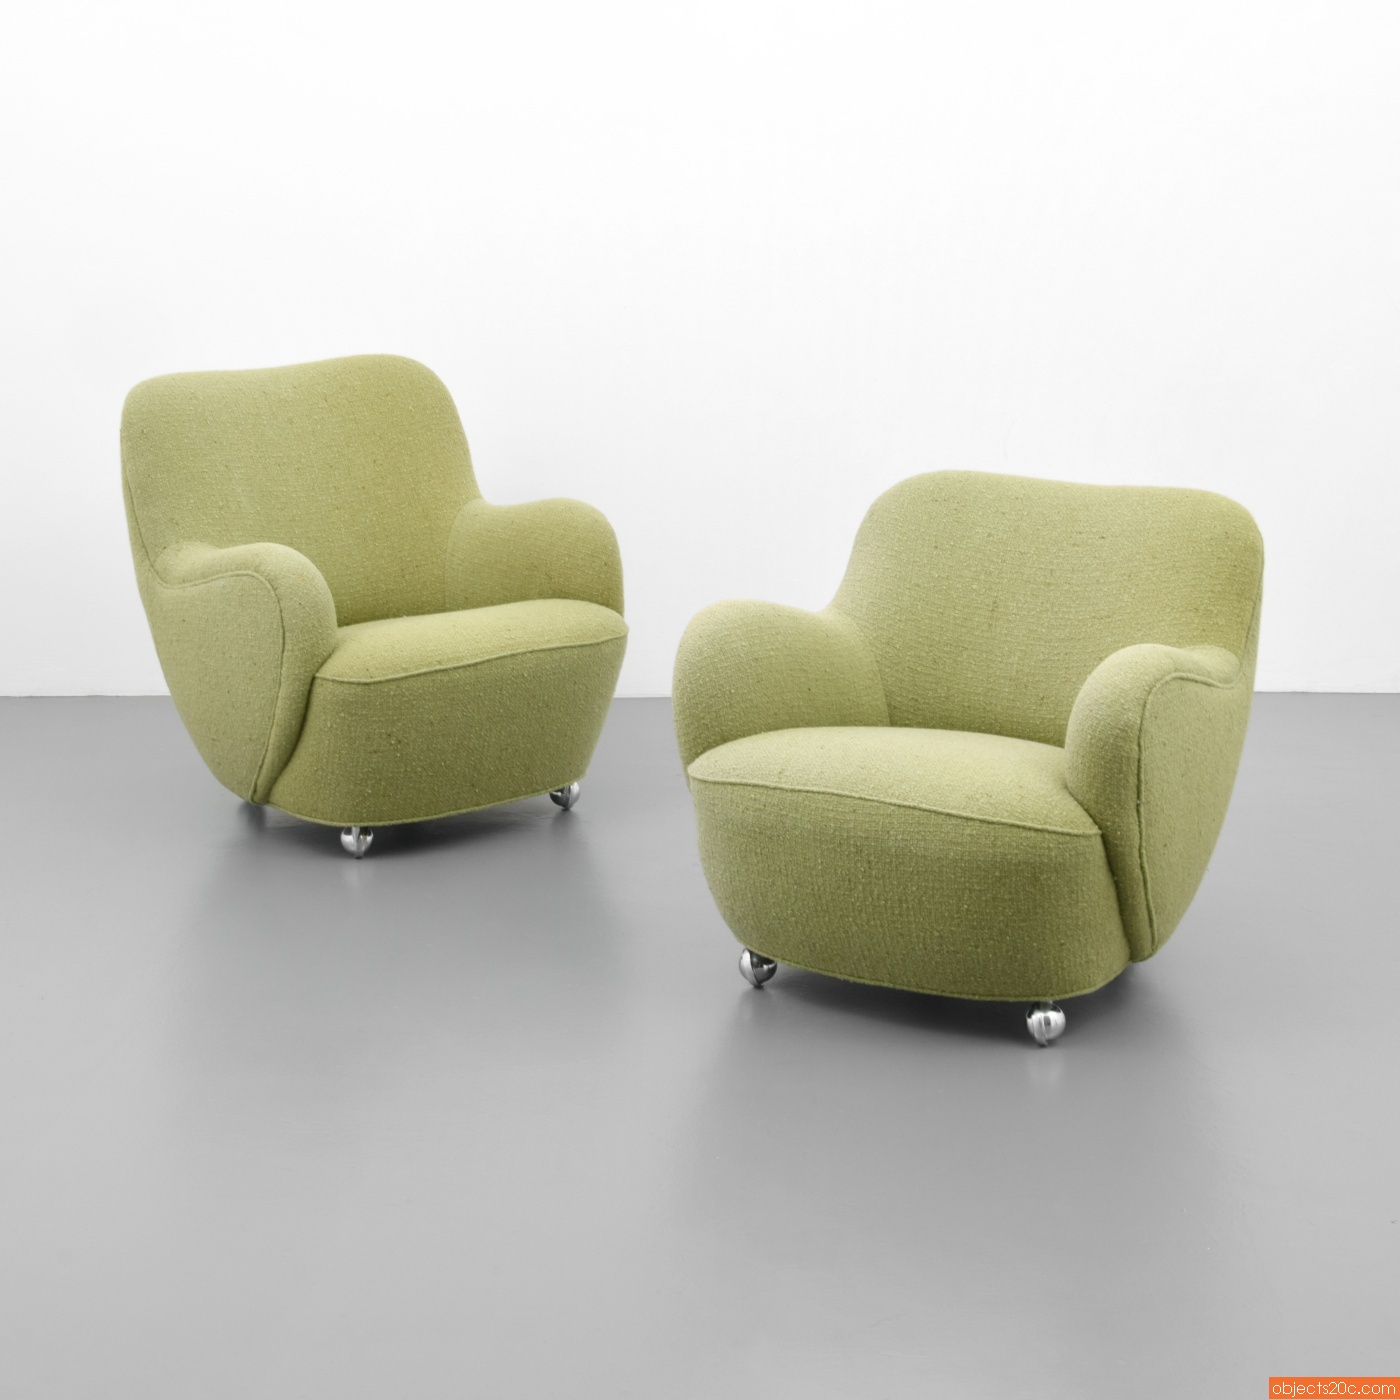 Pair Of Rare Vladimir Kagan U201cBarrelu201d Lounge Chairs (SOLD)